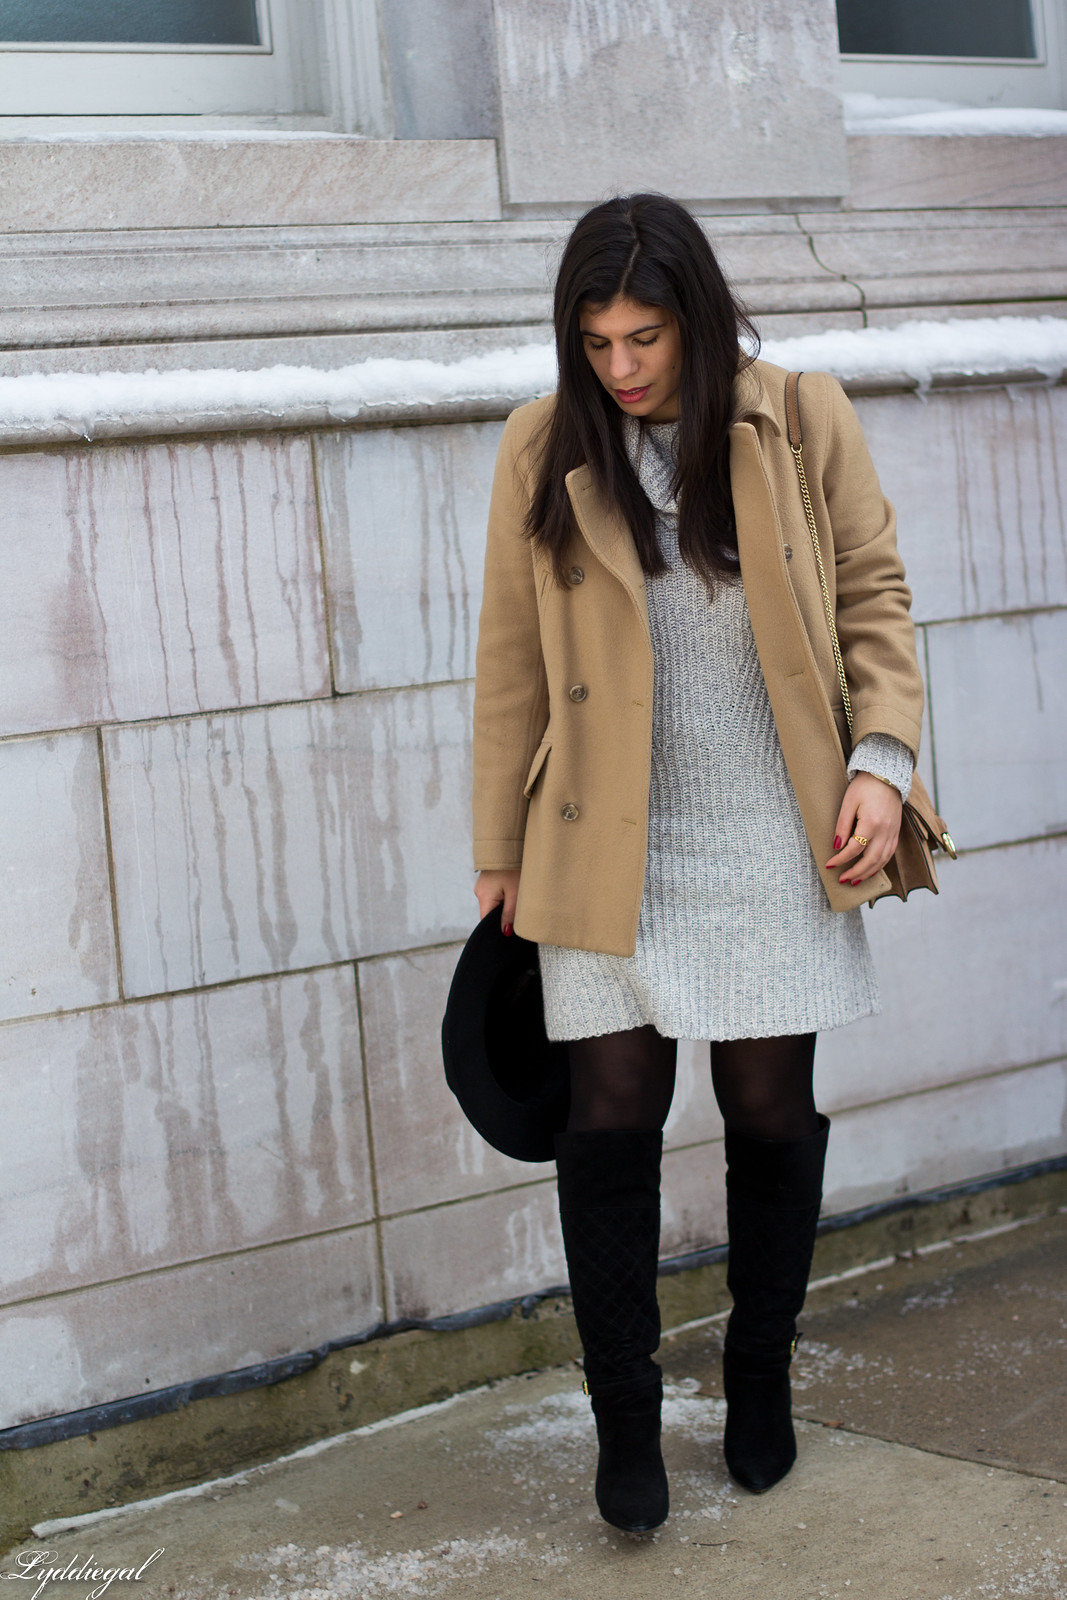 grey sweater dress, camel peacoat, black boots, winter outfit-3.jpg